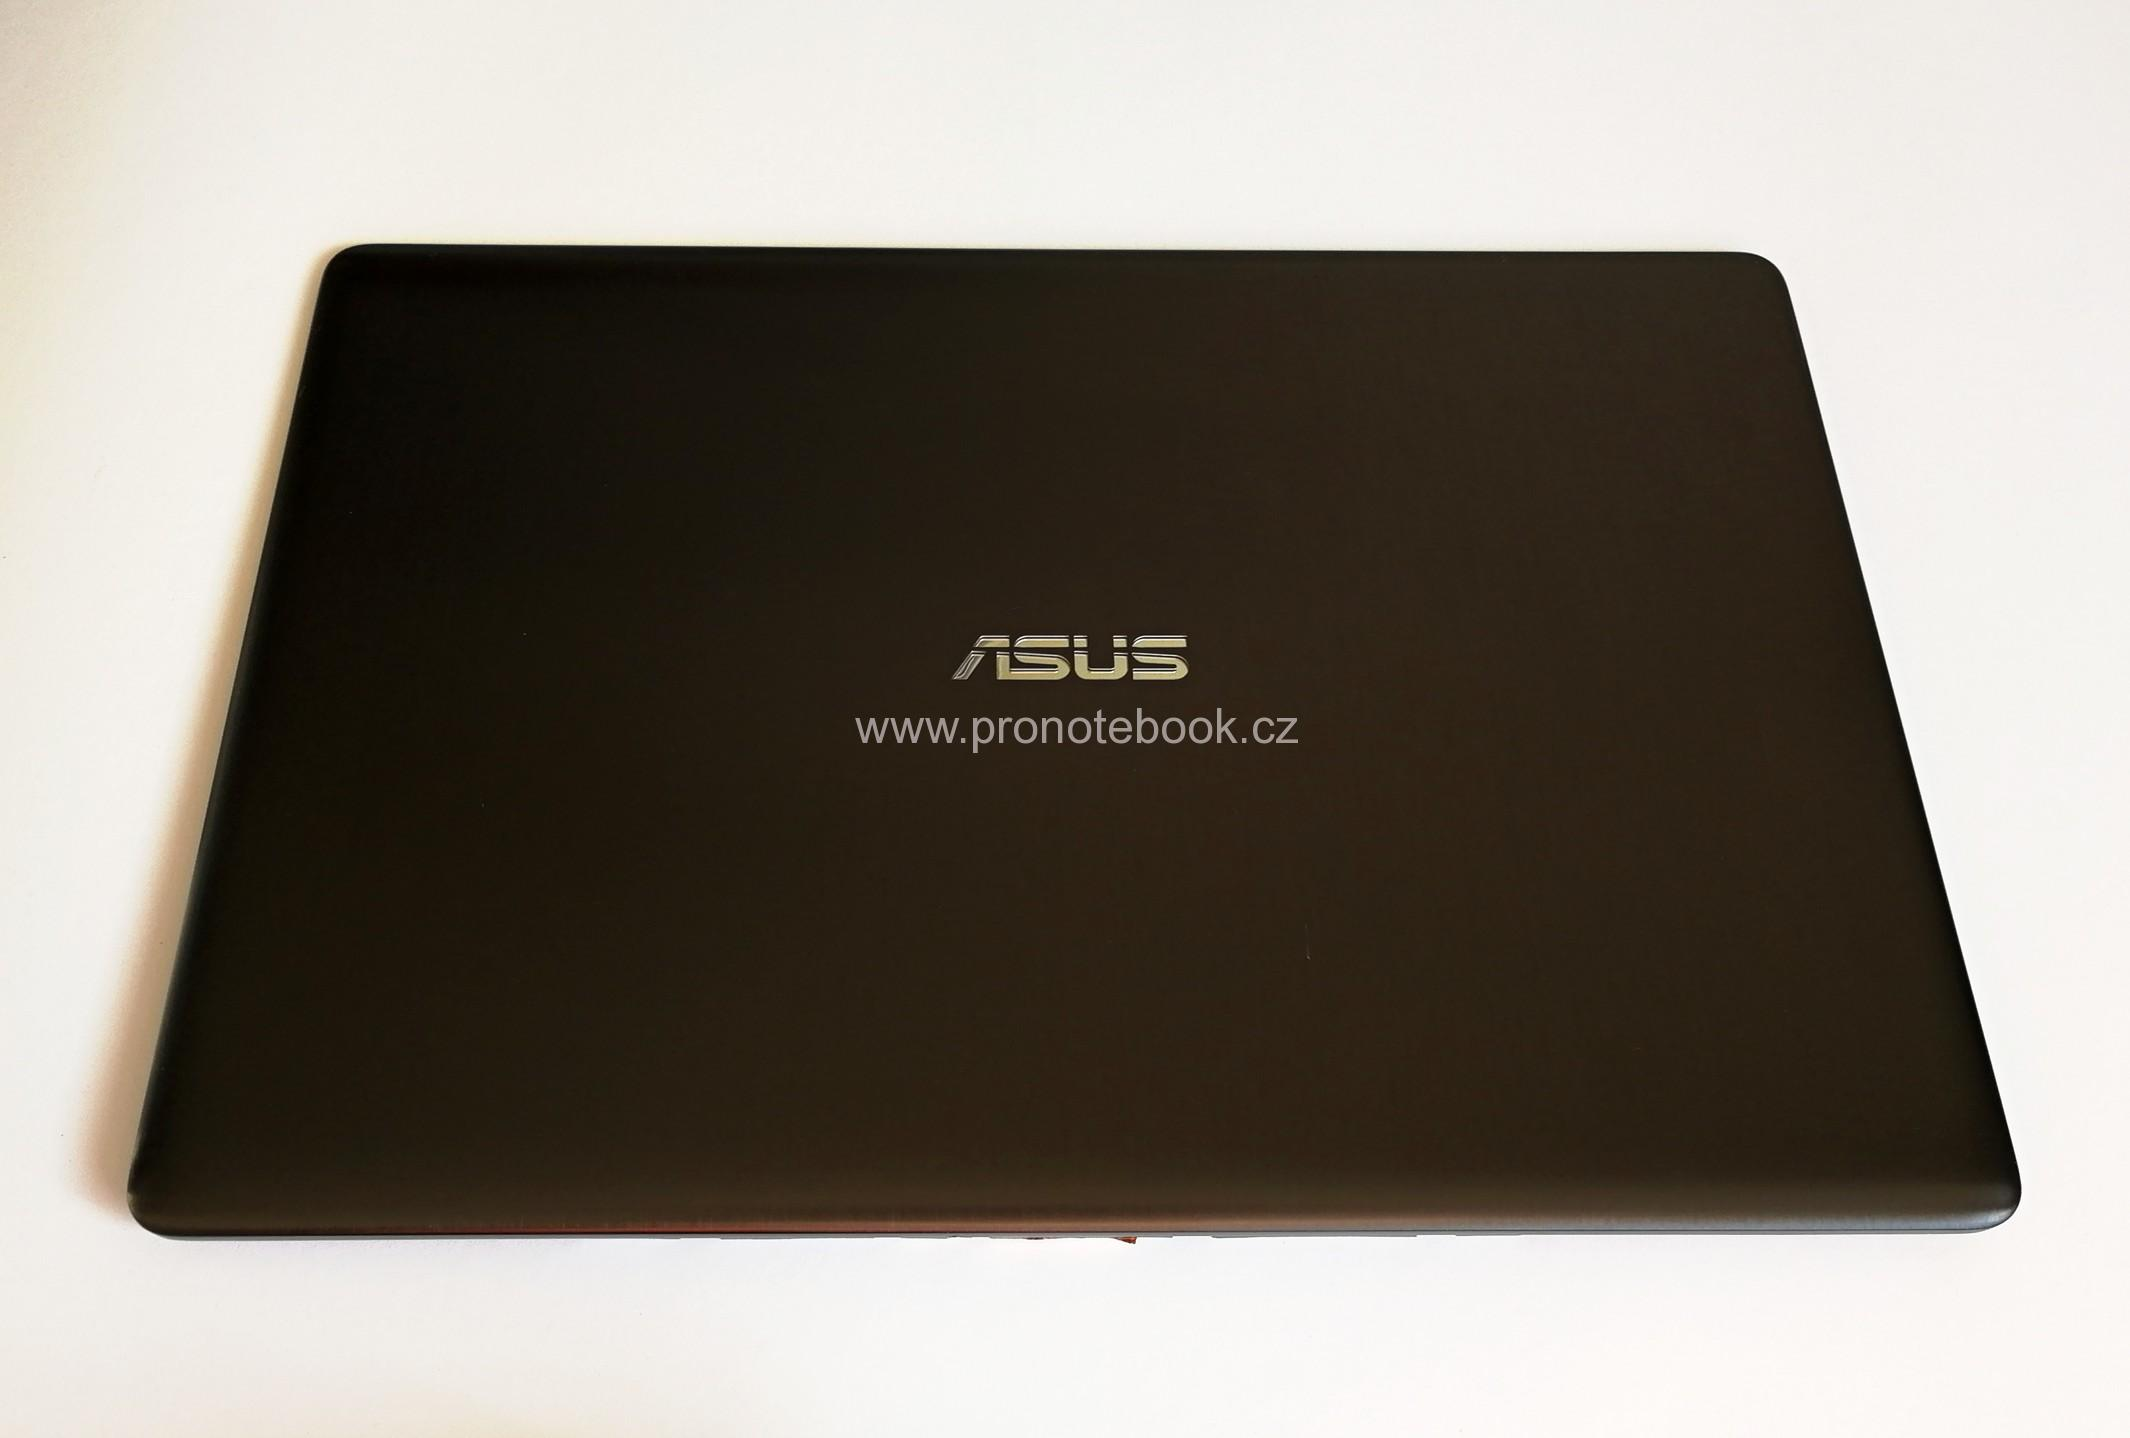 "Asus N750JV N750JK LCD 17.3"" back cover 13NB0201AM0201 with WiFi antenna"